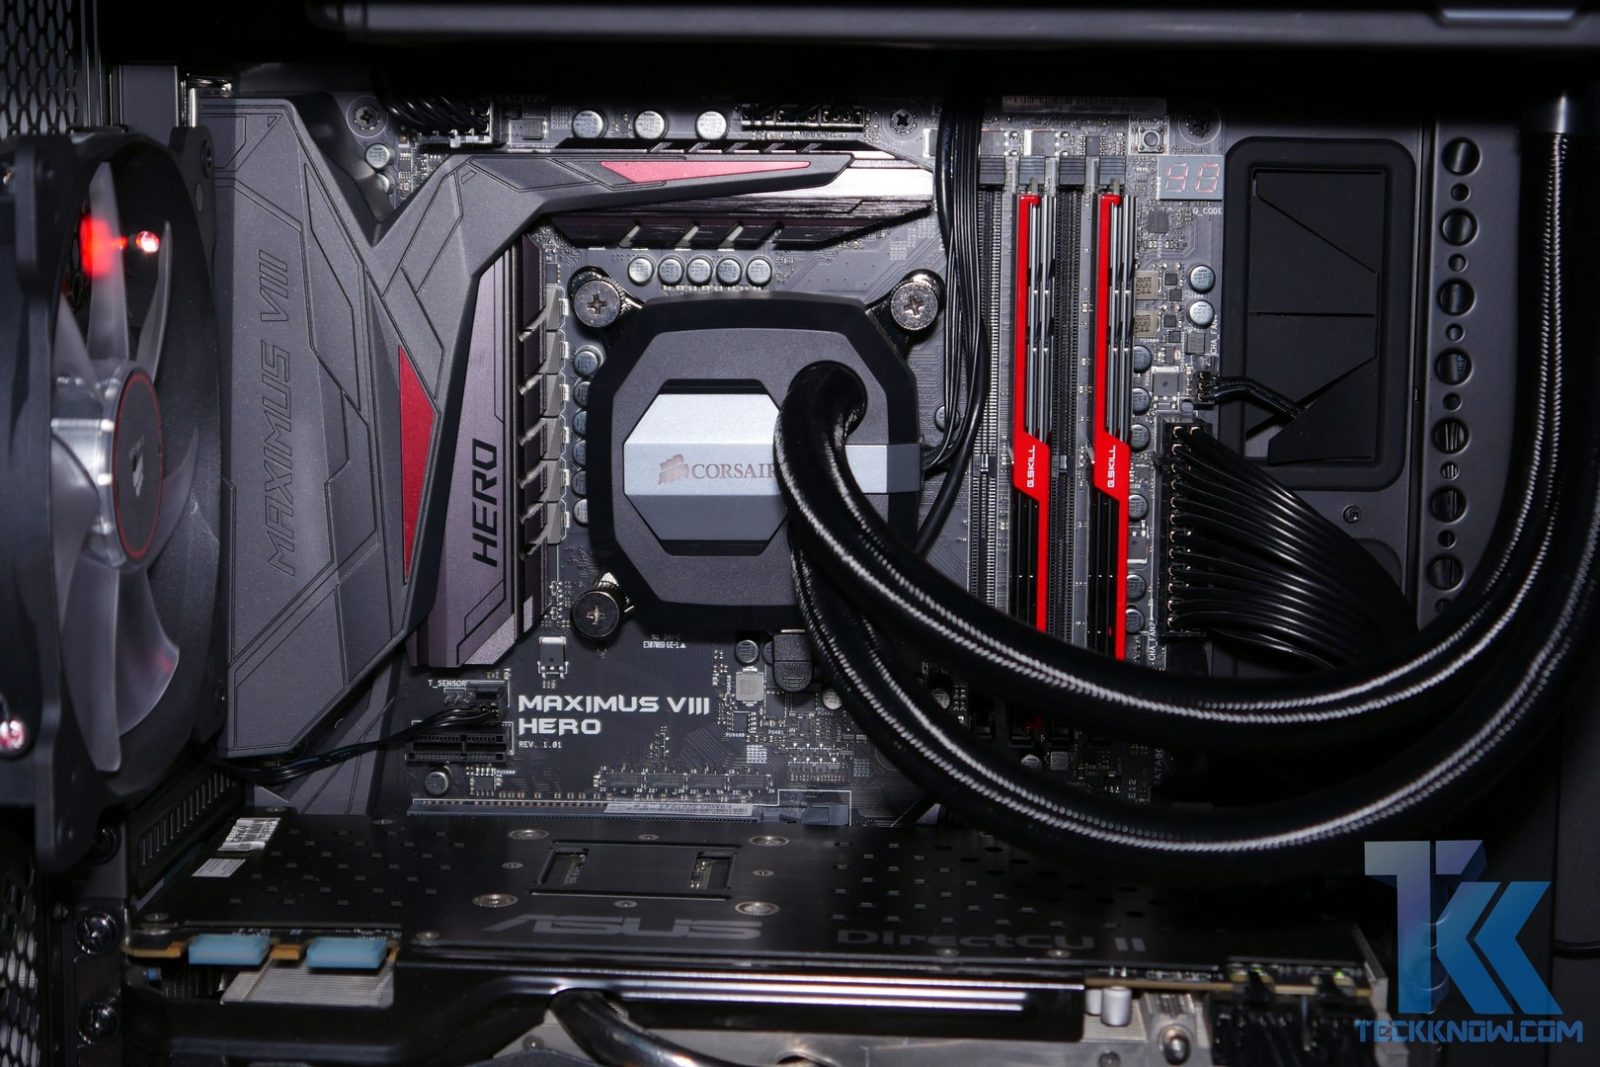 Corsair Hydro H100i GTX High Performance Liquid CPU Cooler ...